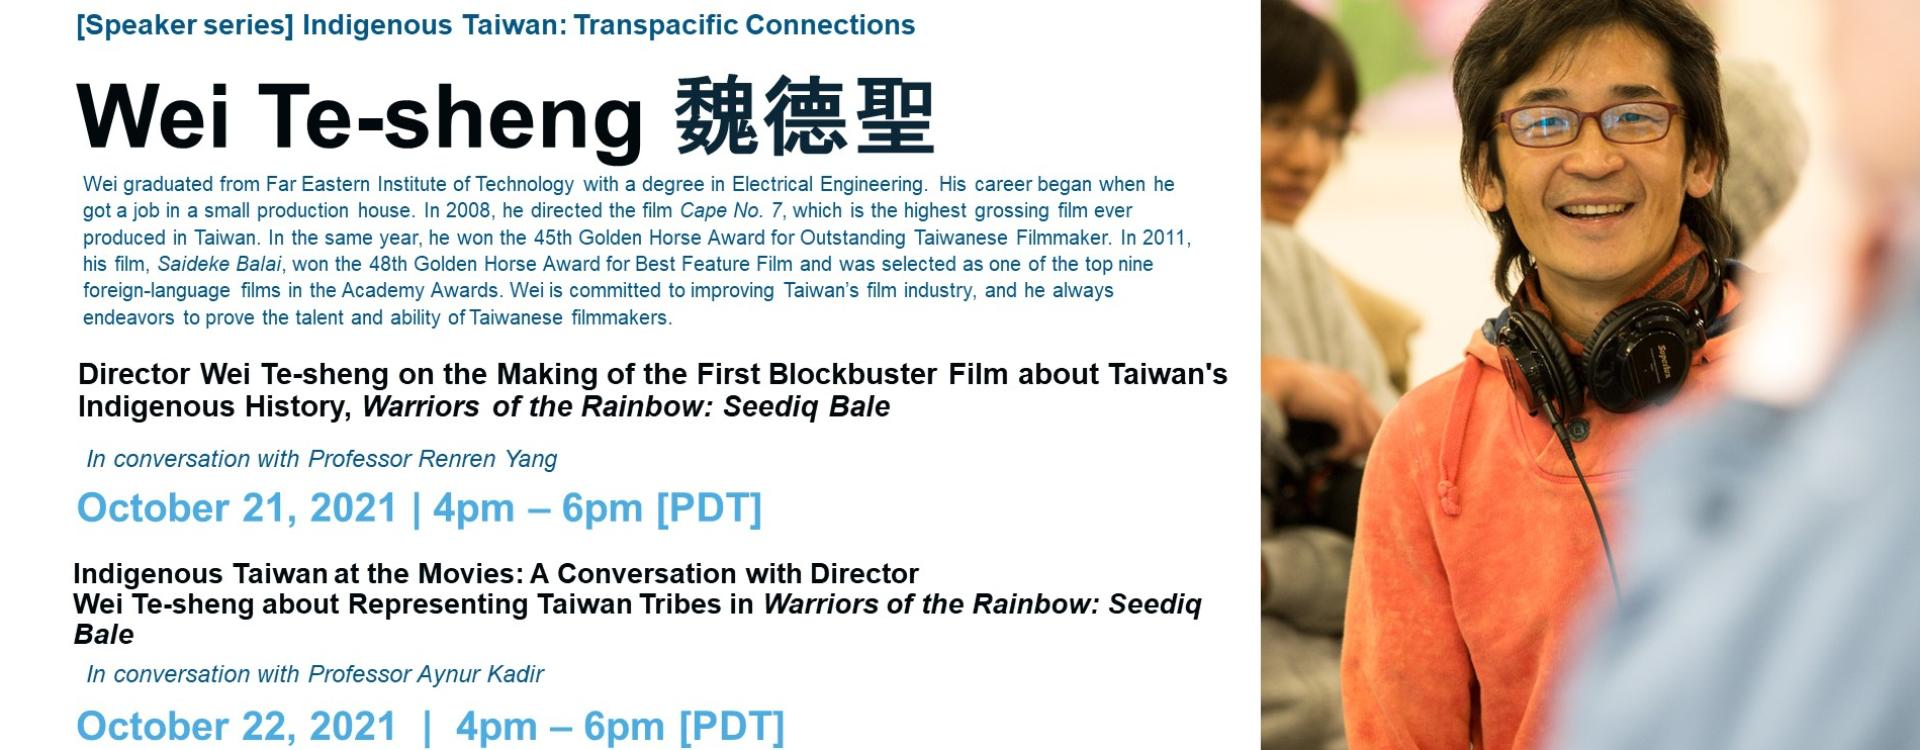 """UBC Launches """"Indigenous Taiwan: Transpacific Connections"""" Online Series「另開新視窗」"""